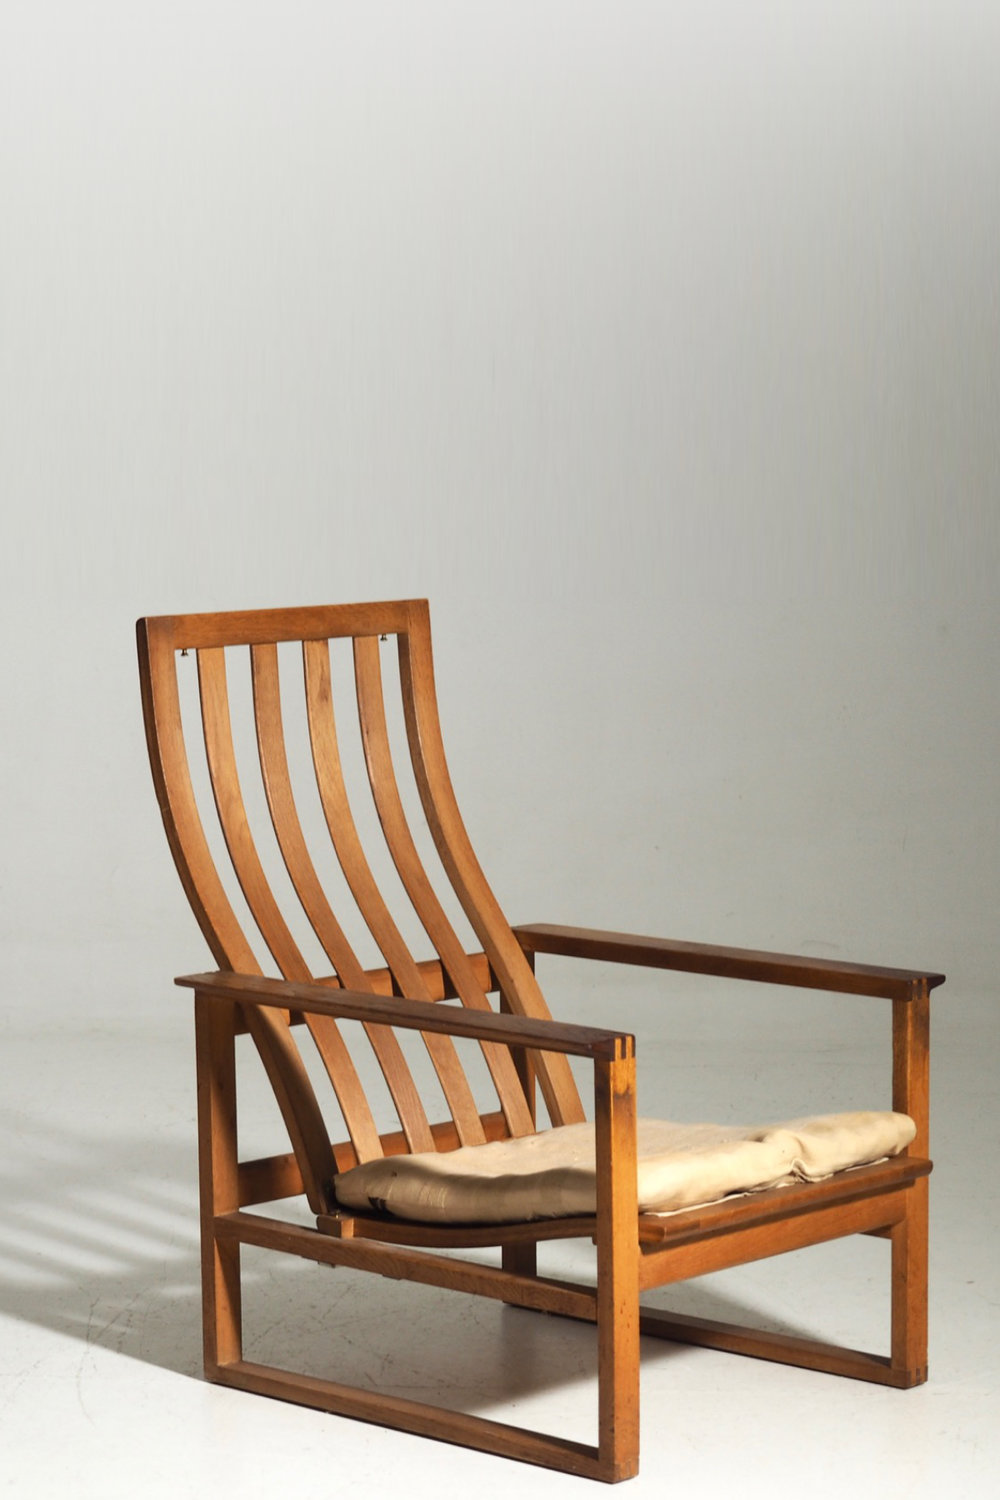 Fine and rare chair by Børge Mogensen, 60´s